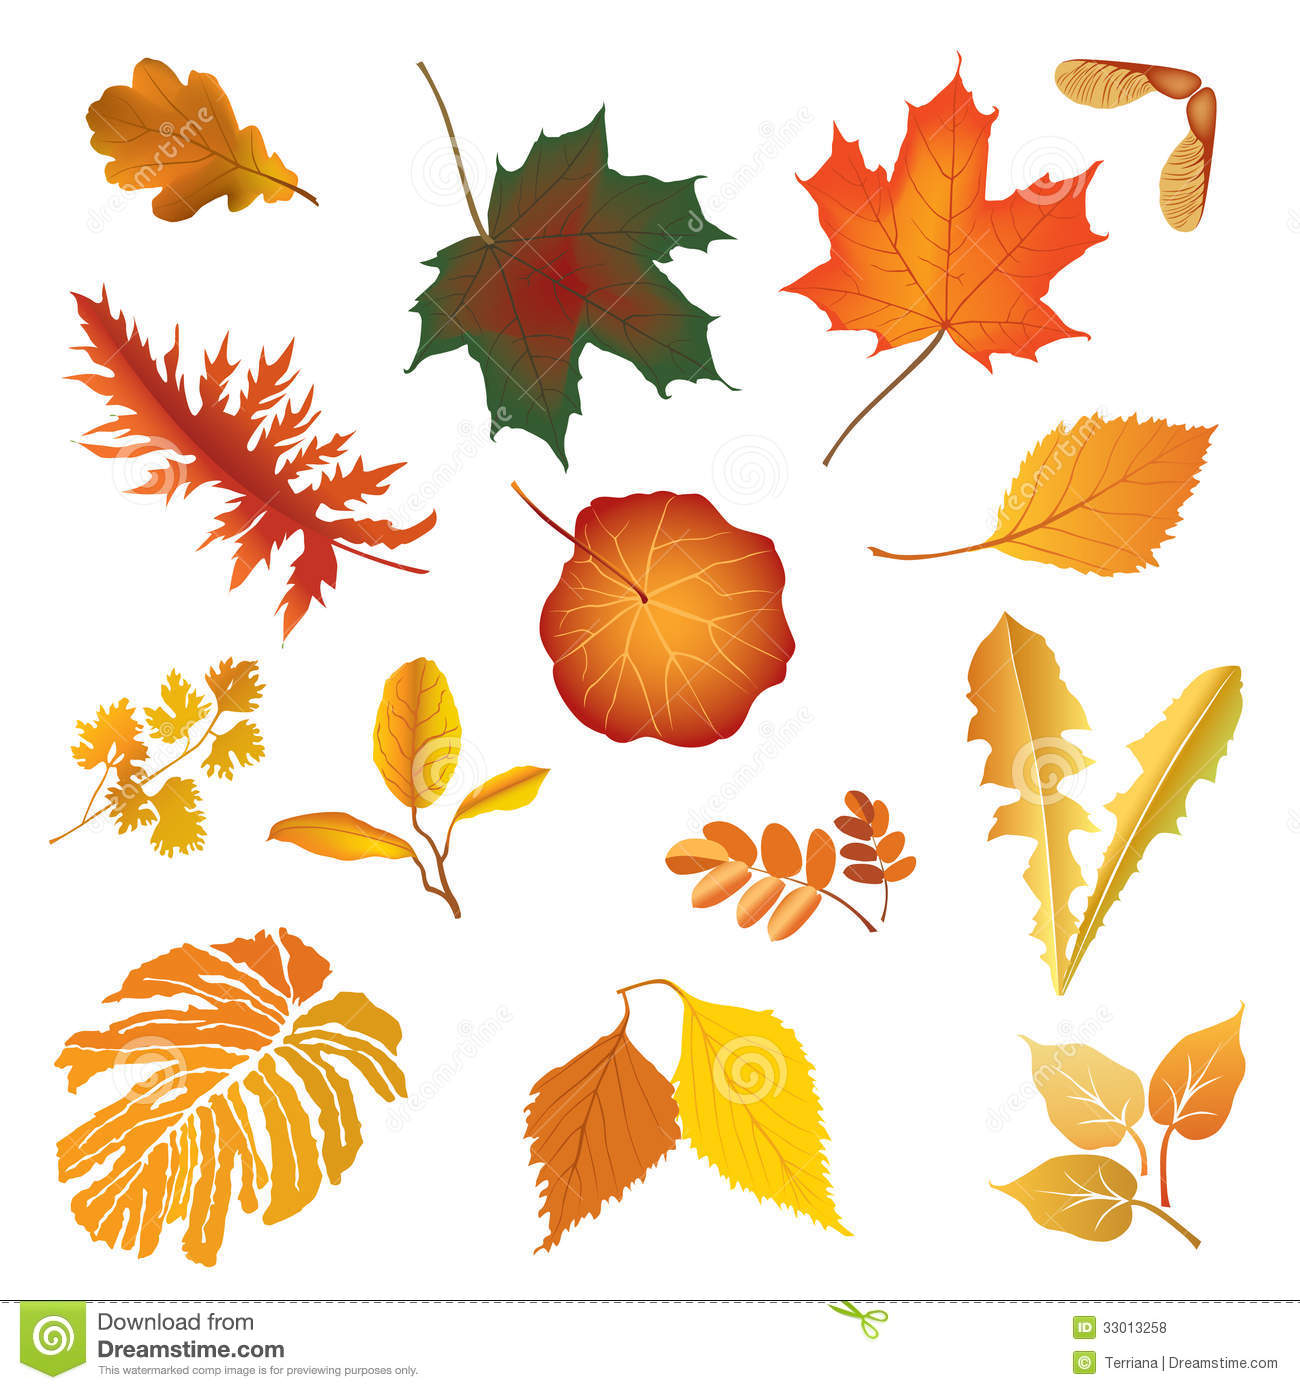 Leaves icon set autumn nature decor royalty free stock